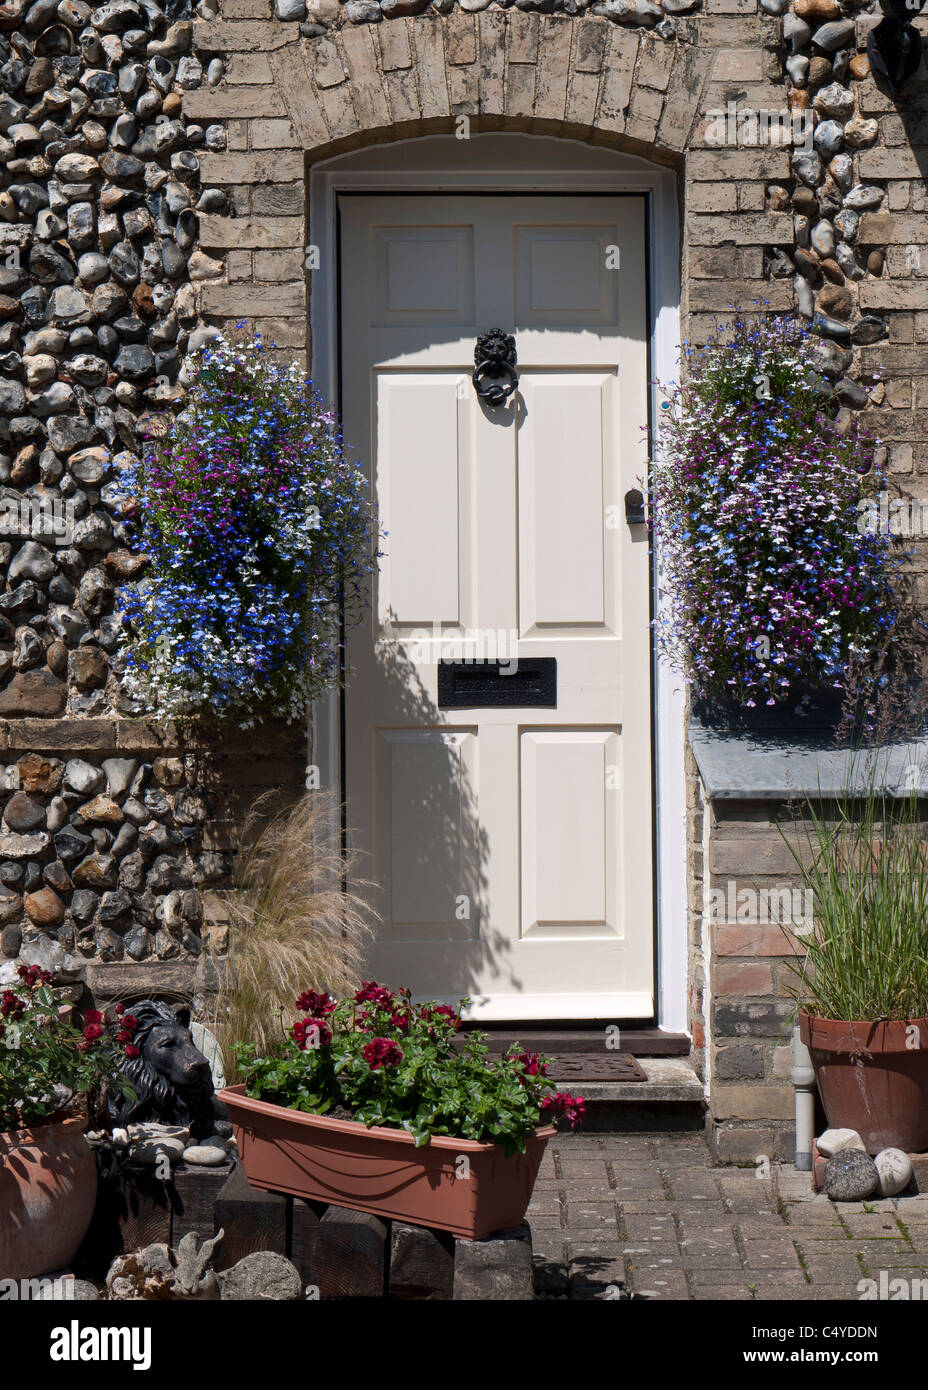 Doorway of stone cottage with summer hanging baskets, England - Stock Image